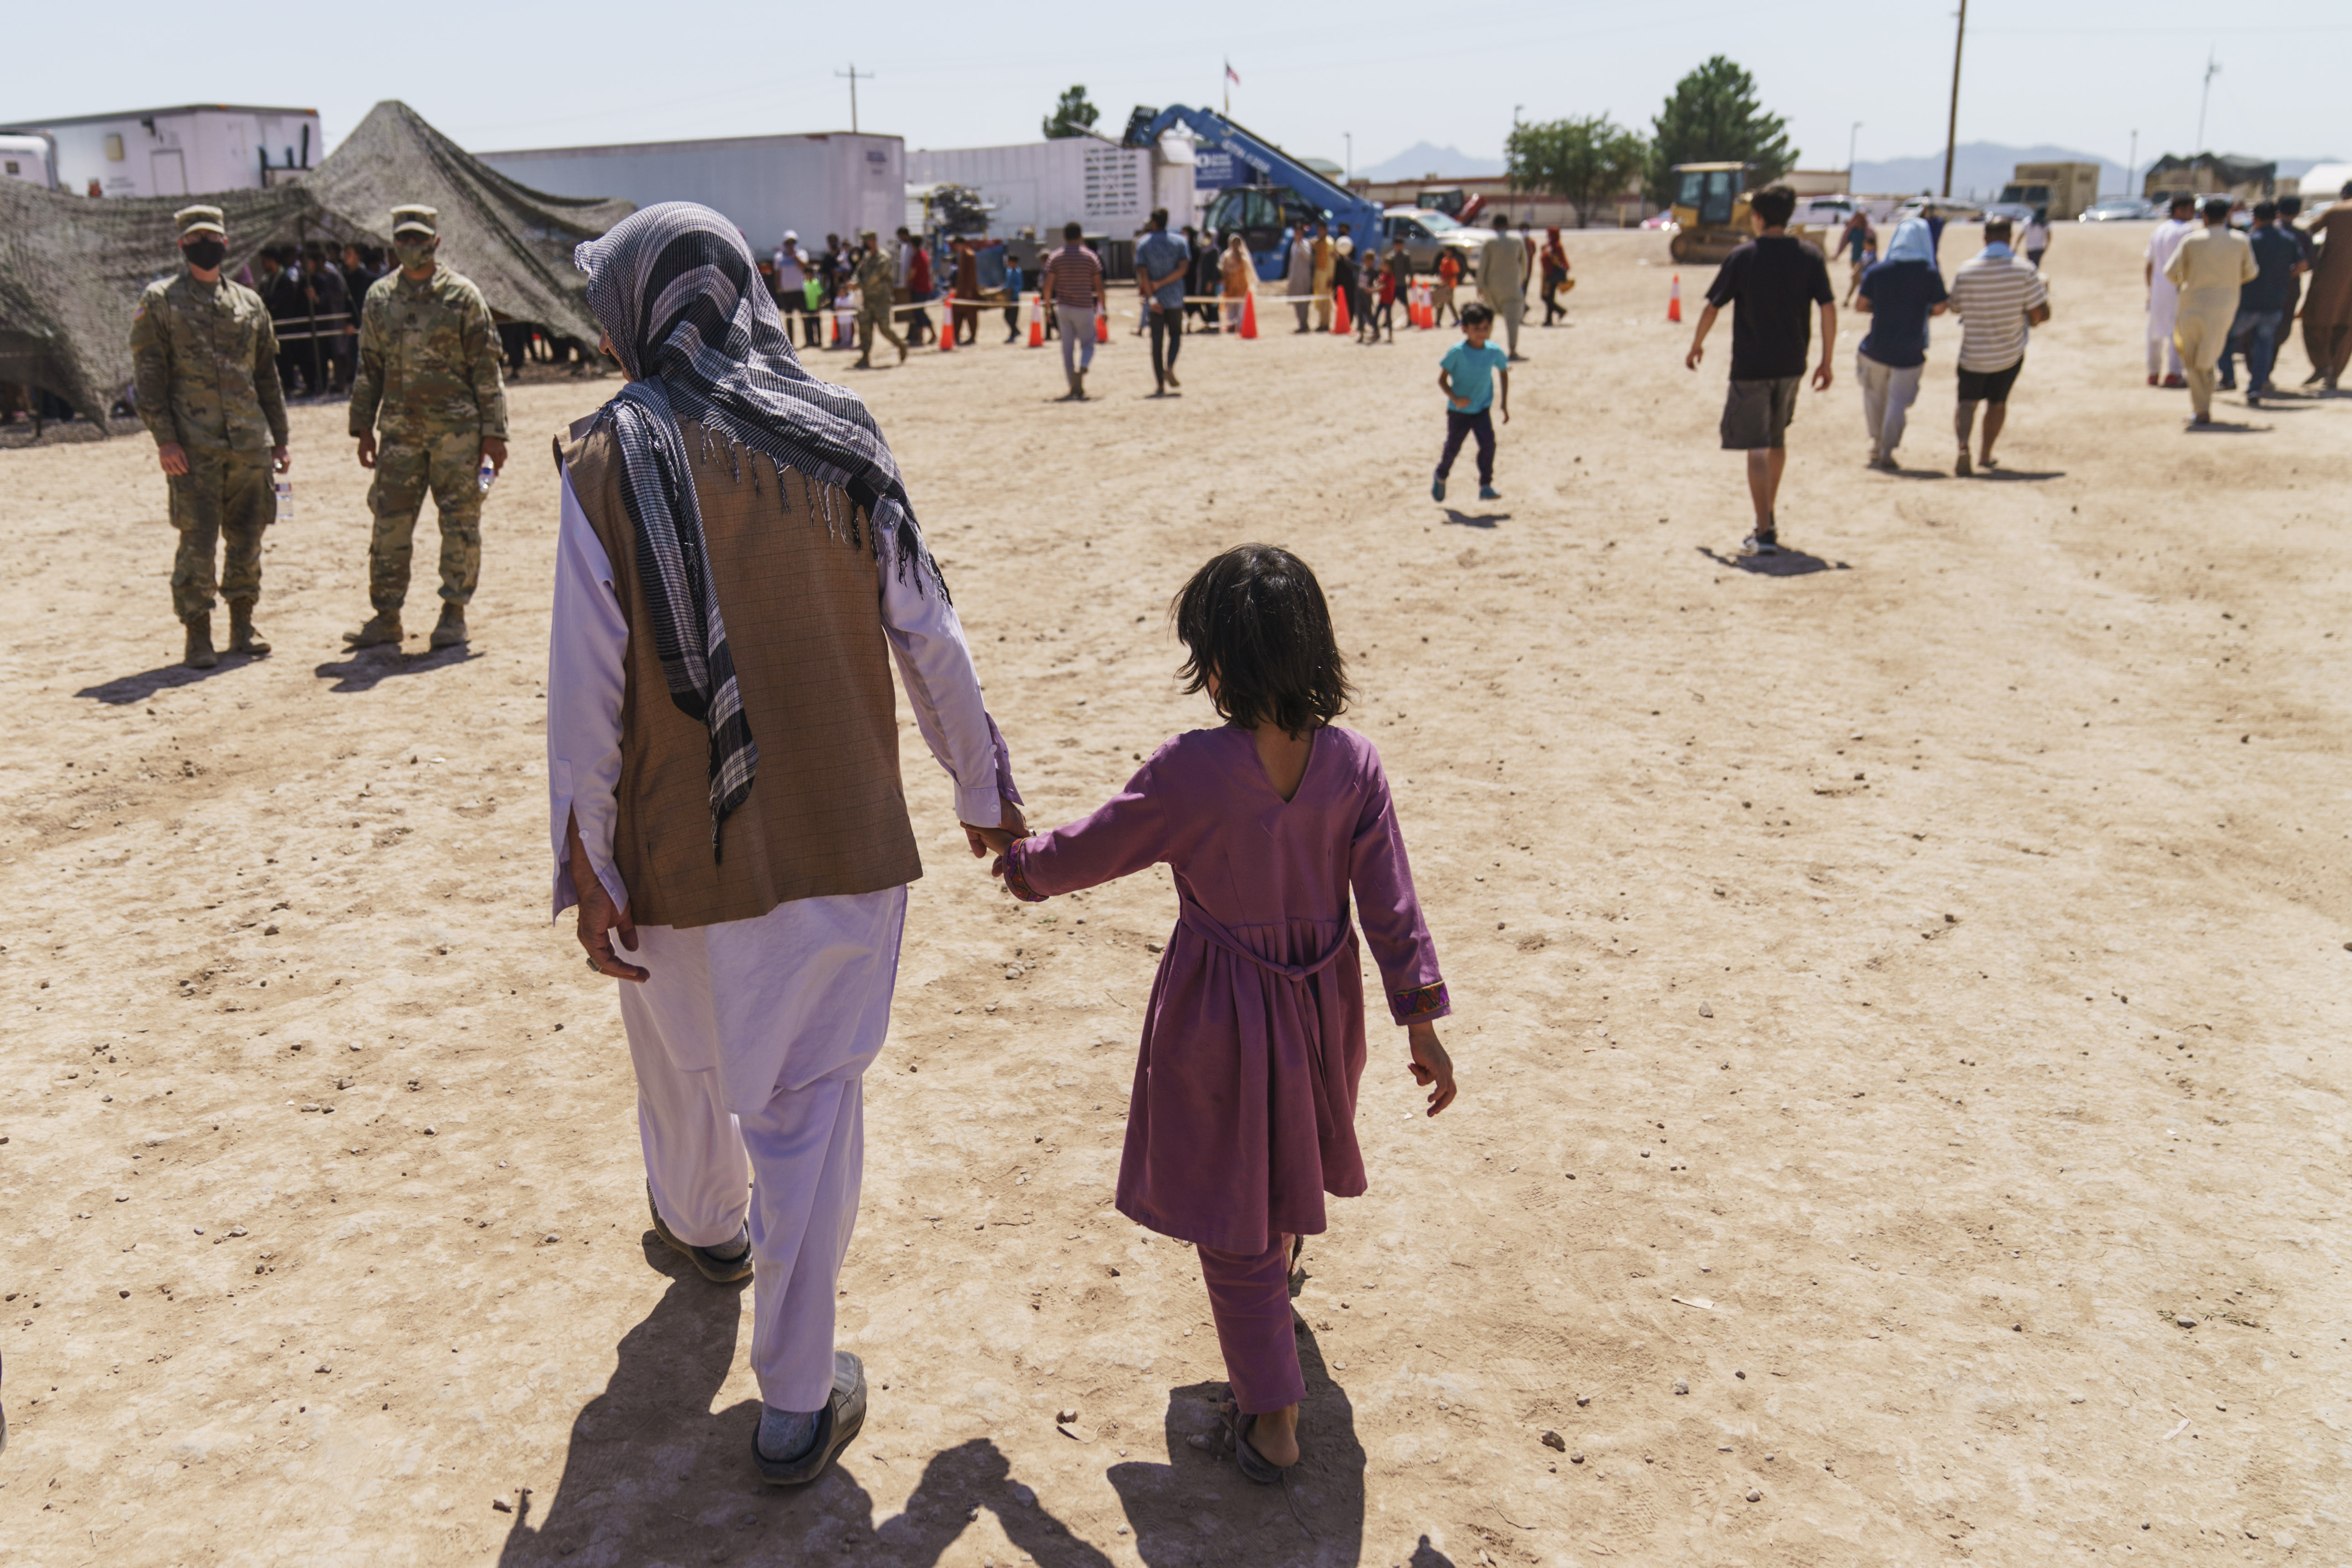 A man walks with a child through Fort Bliss' Doña Ana Village where Afghan refugees are being housed, in New Mexico.